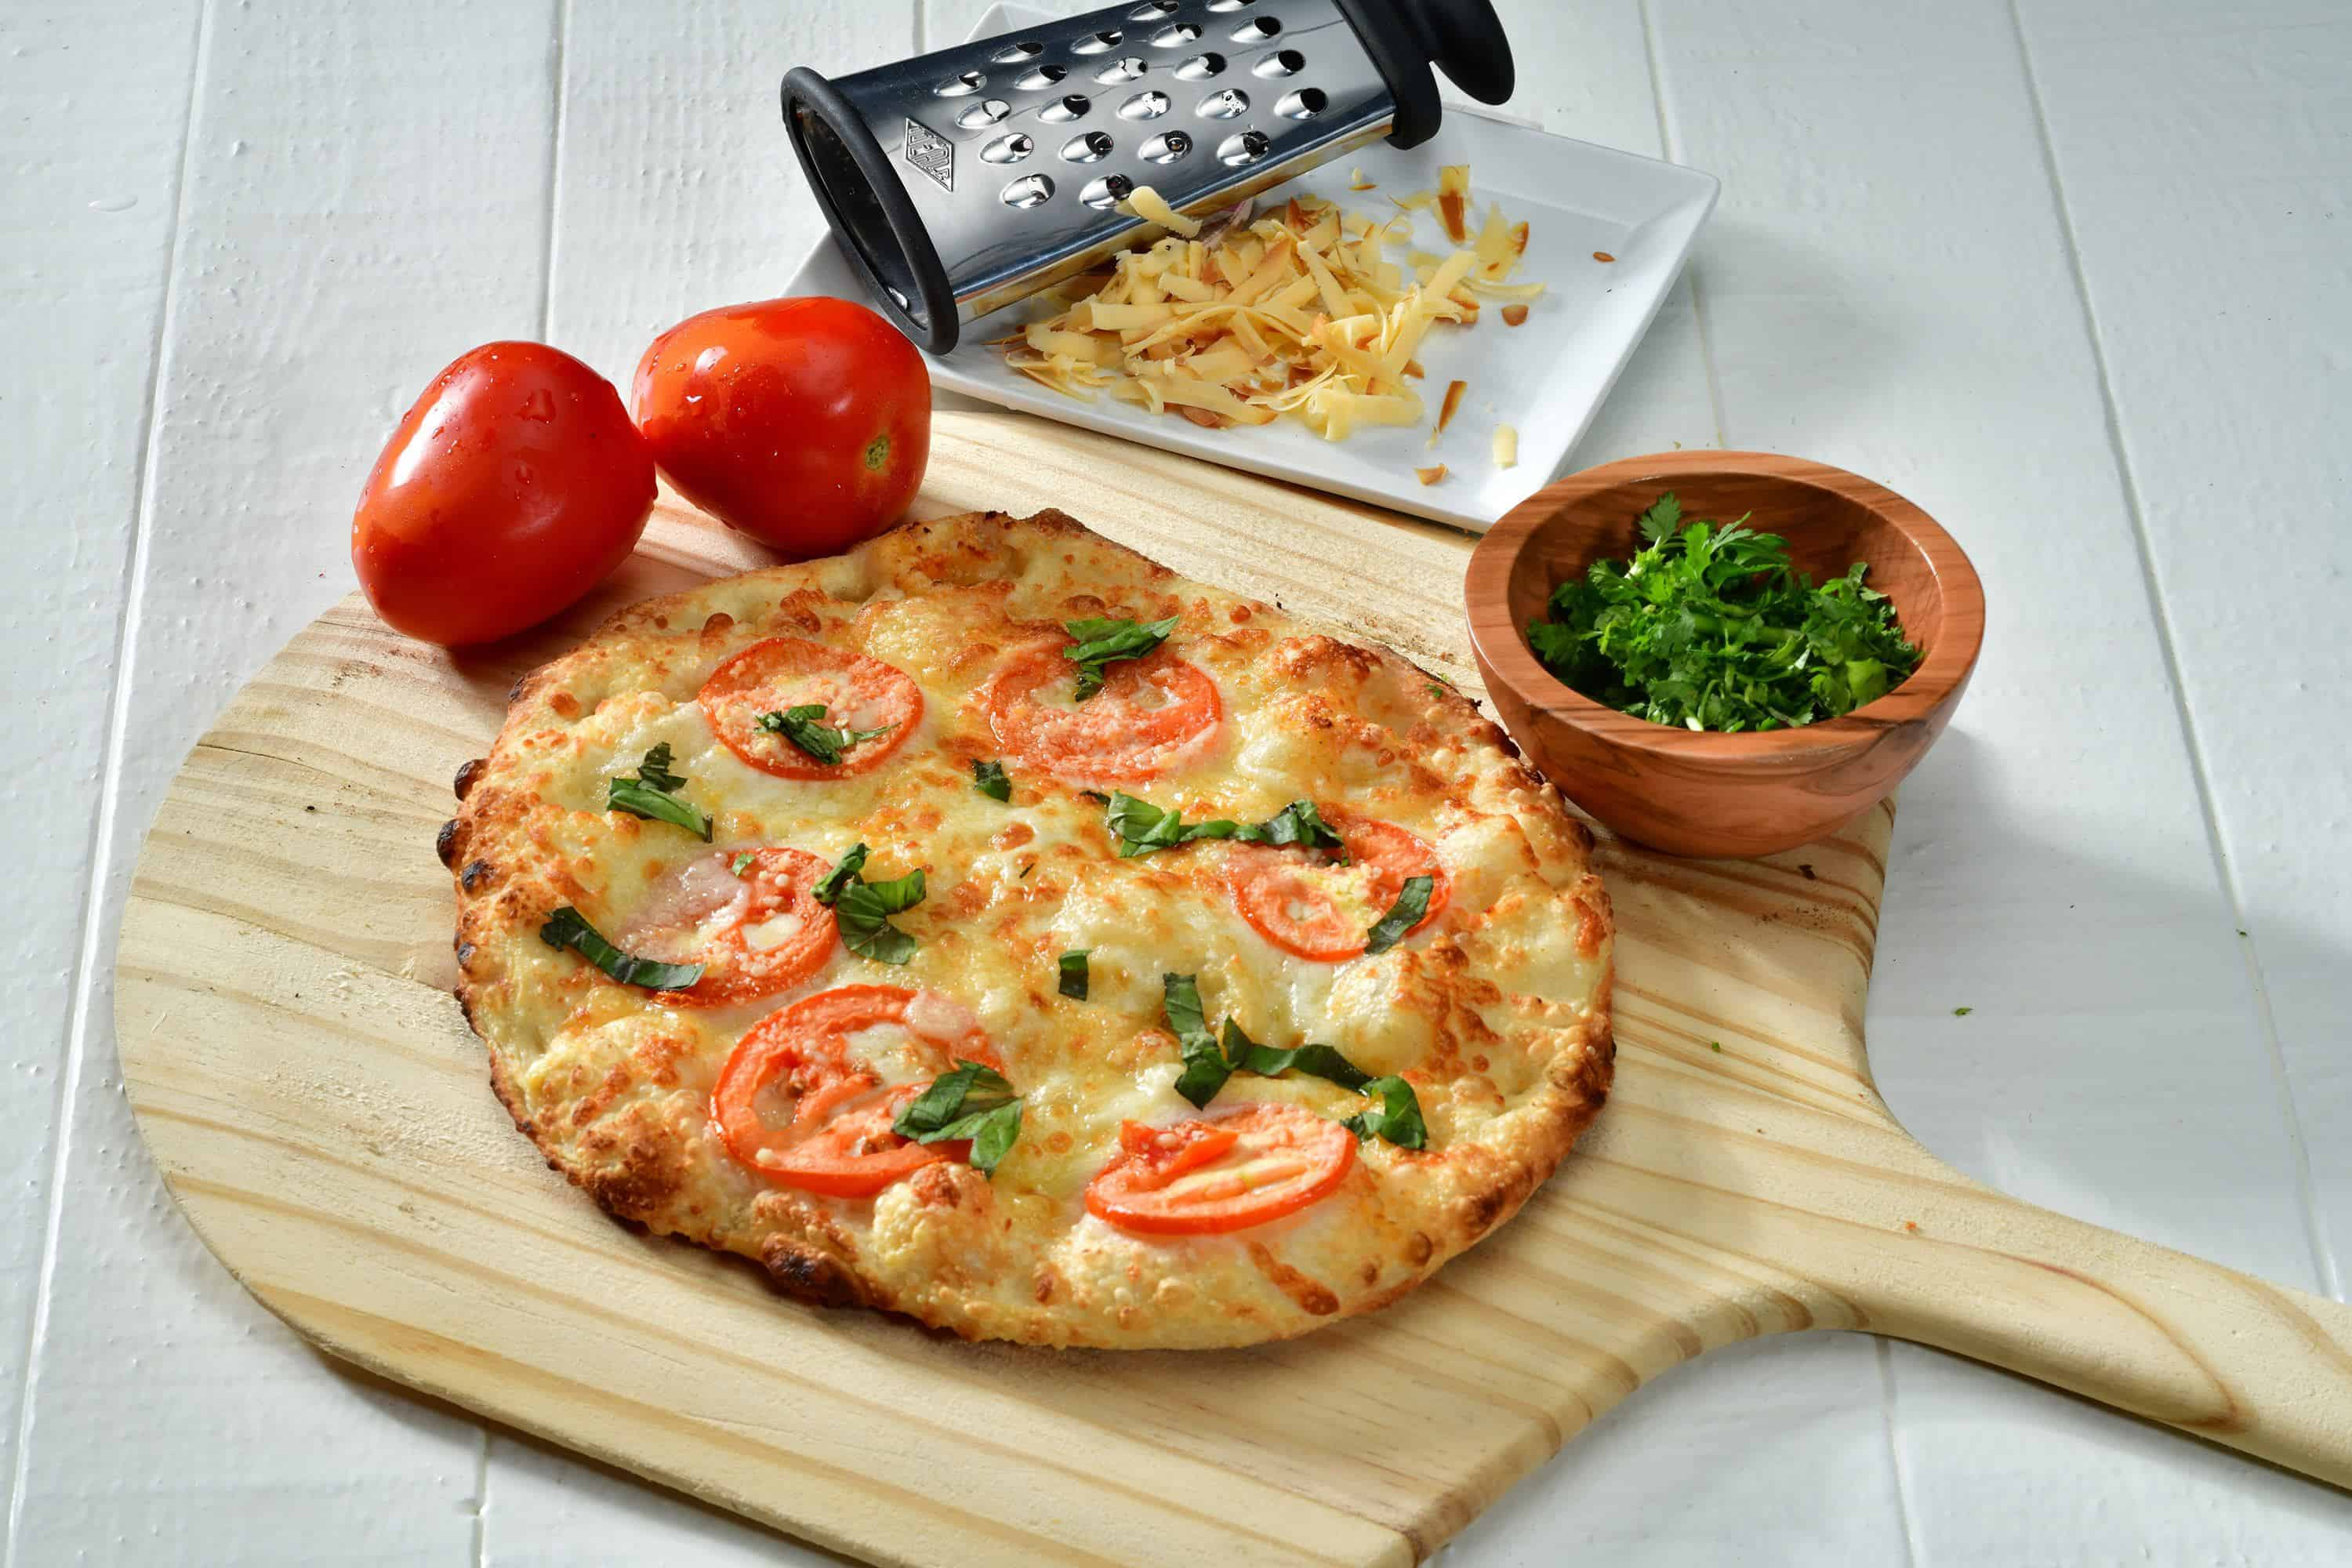 Pizza topping ideas to make homemade pizza more exciting! This list of pizza toppings range from classic to unique, and can be combined for unique combos!